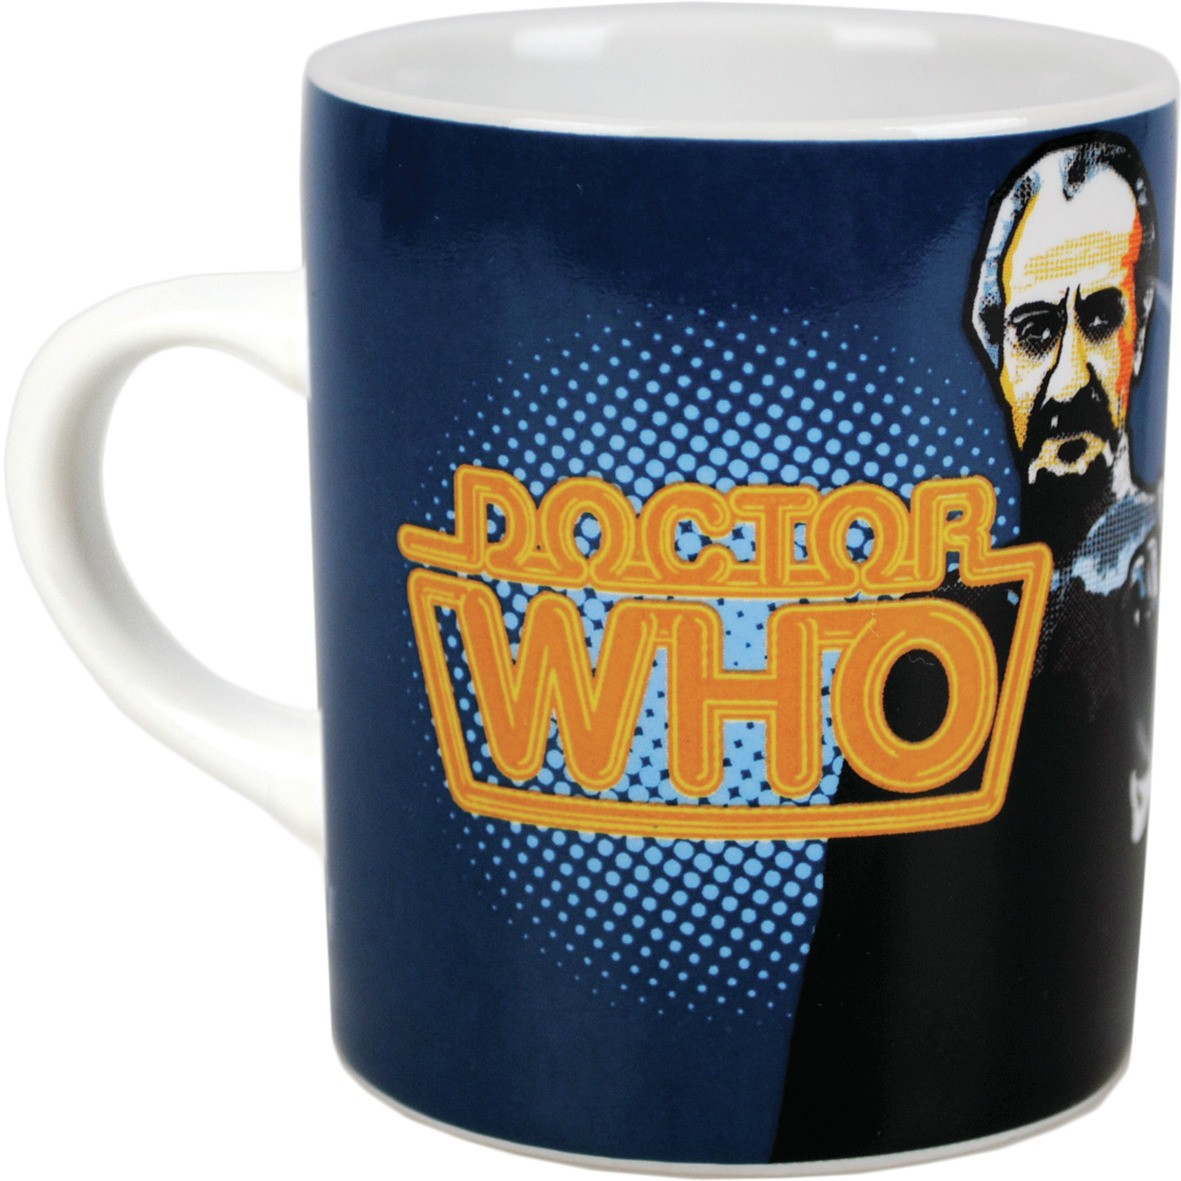 NEW 3RD DOCTOR WHO JON PERTWEE BOXED MUG RETRO DALEKS DR TARDIS CUP GIFT CERAMIC